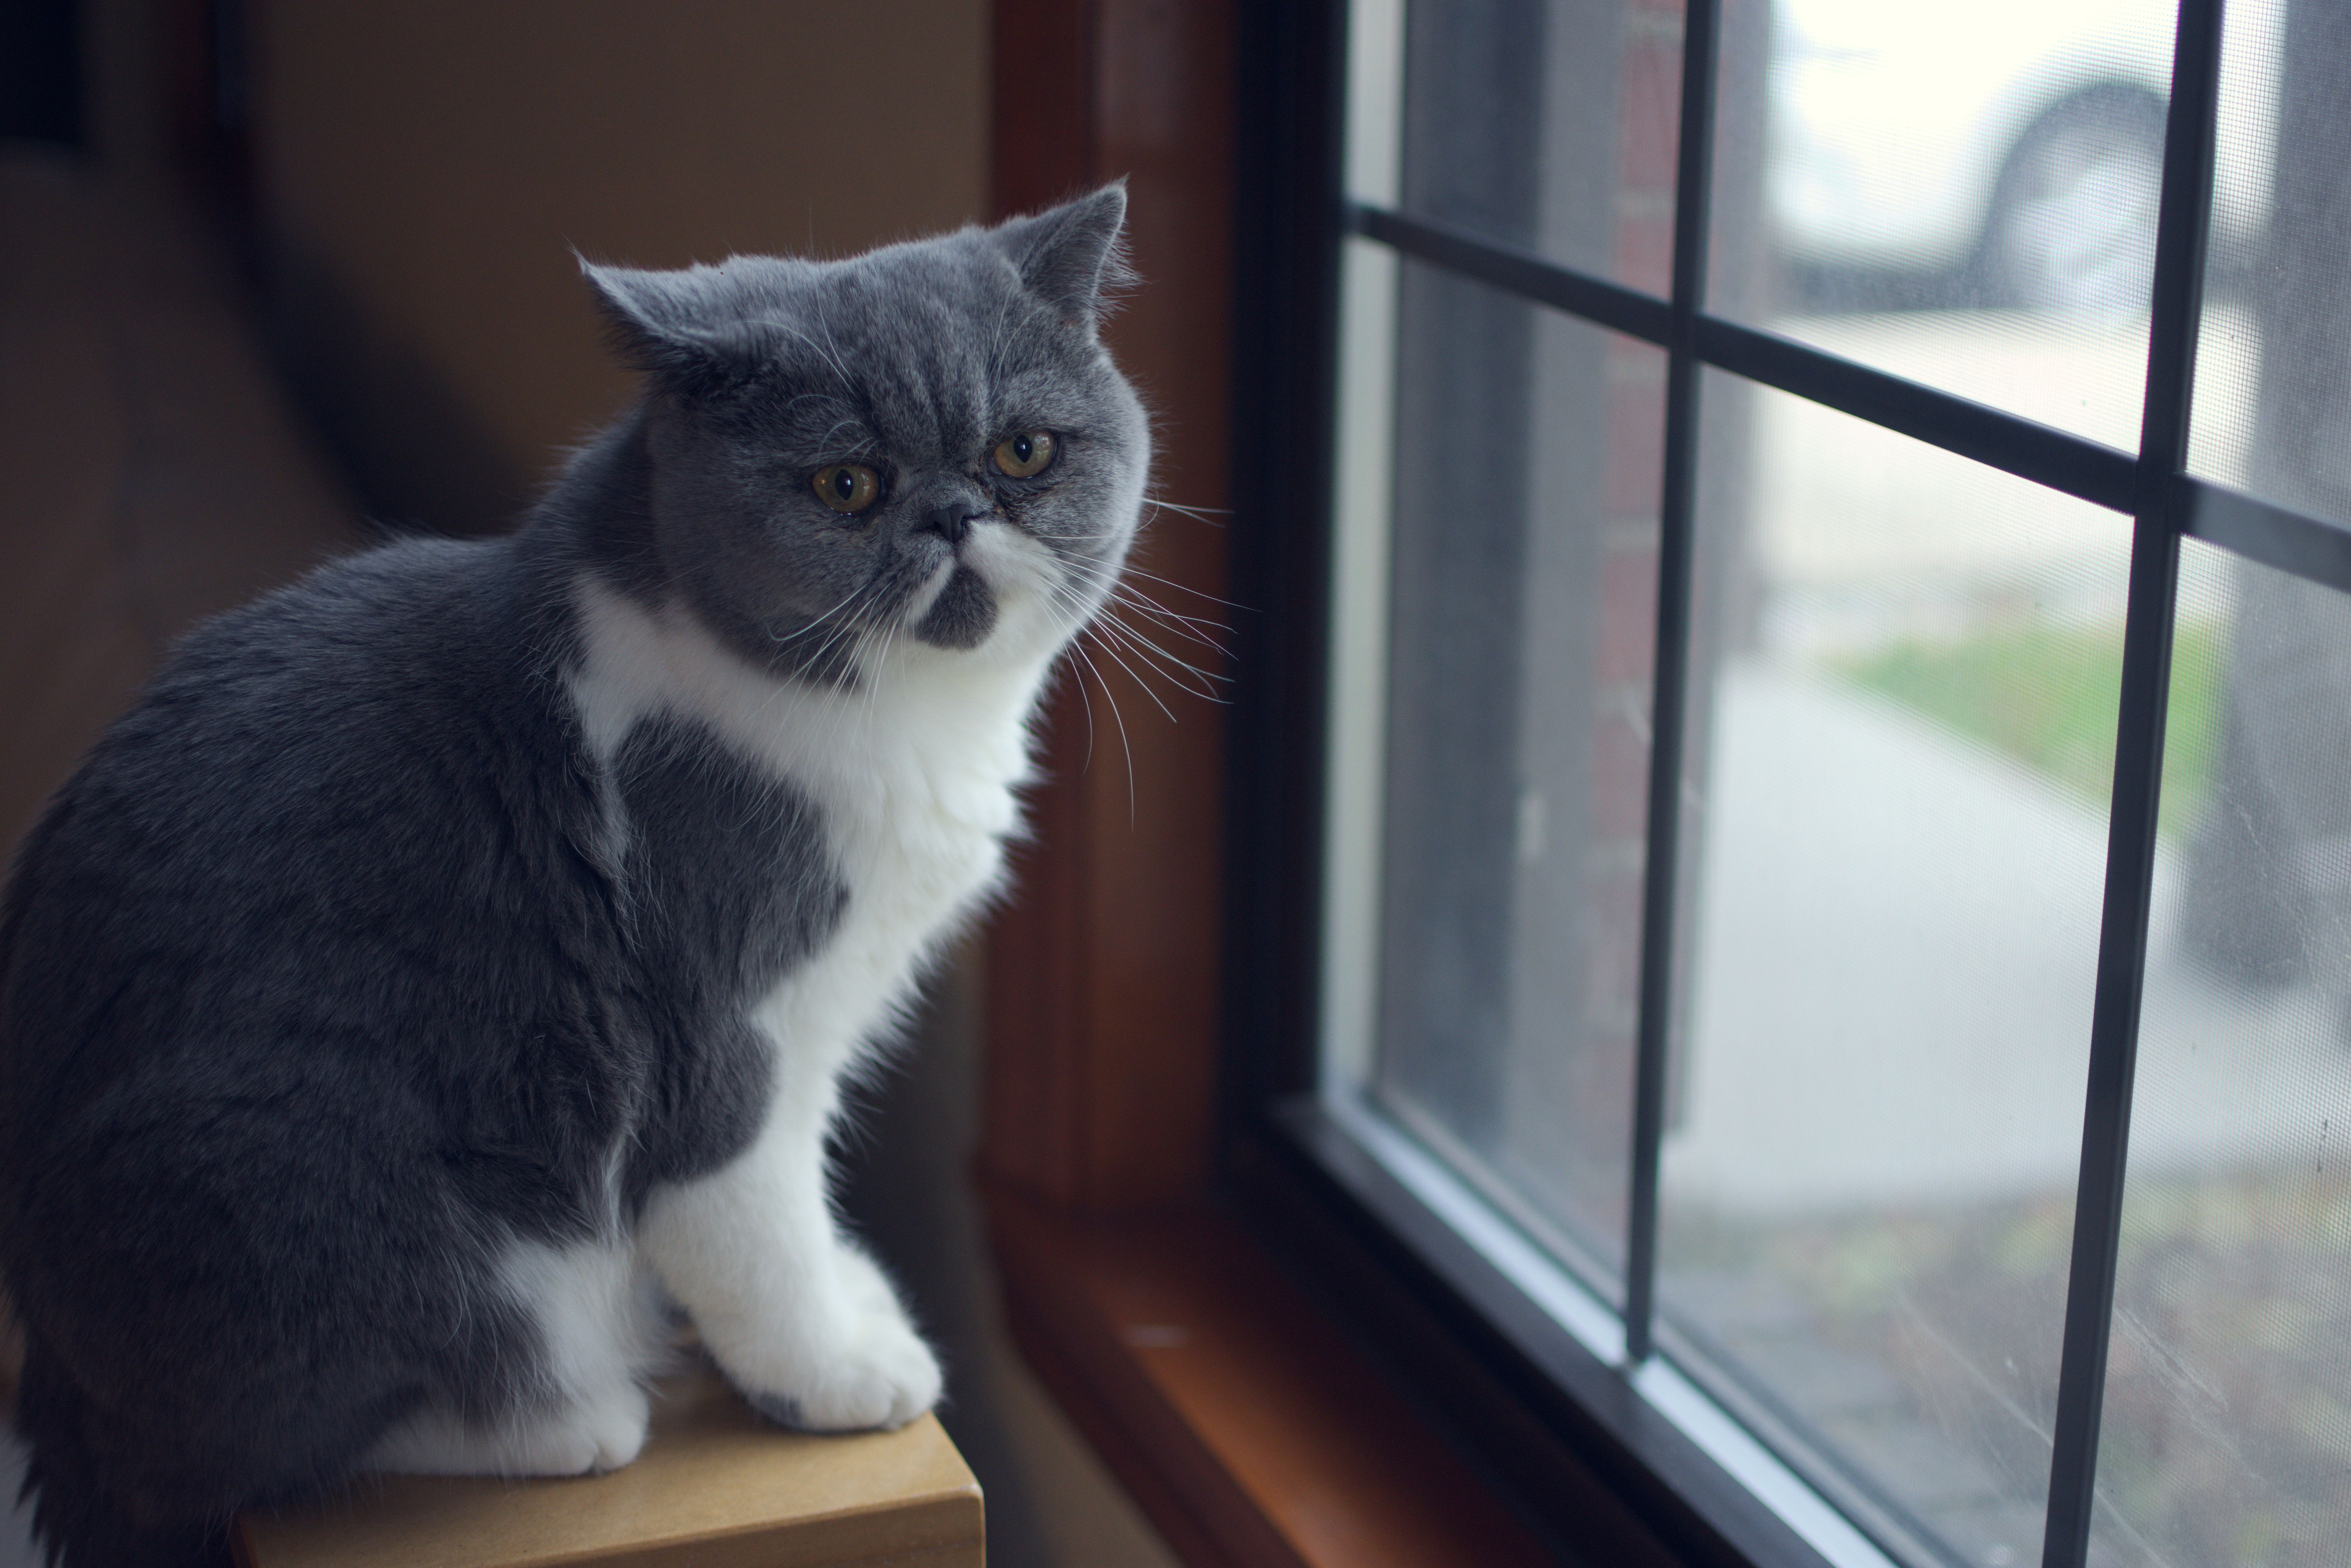 Exotic shorthair cat by a window